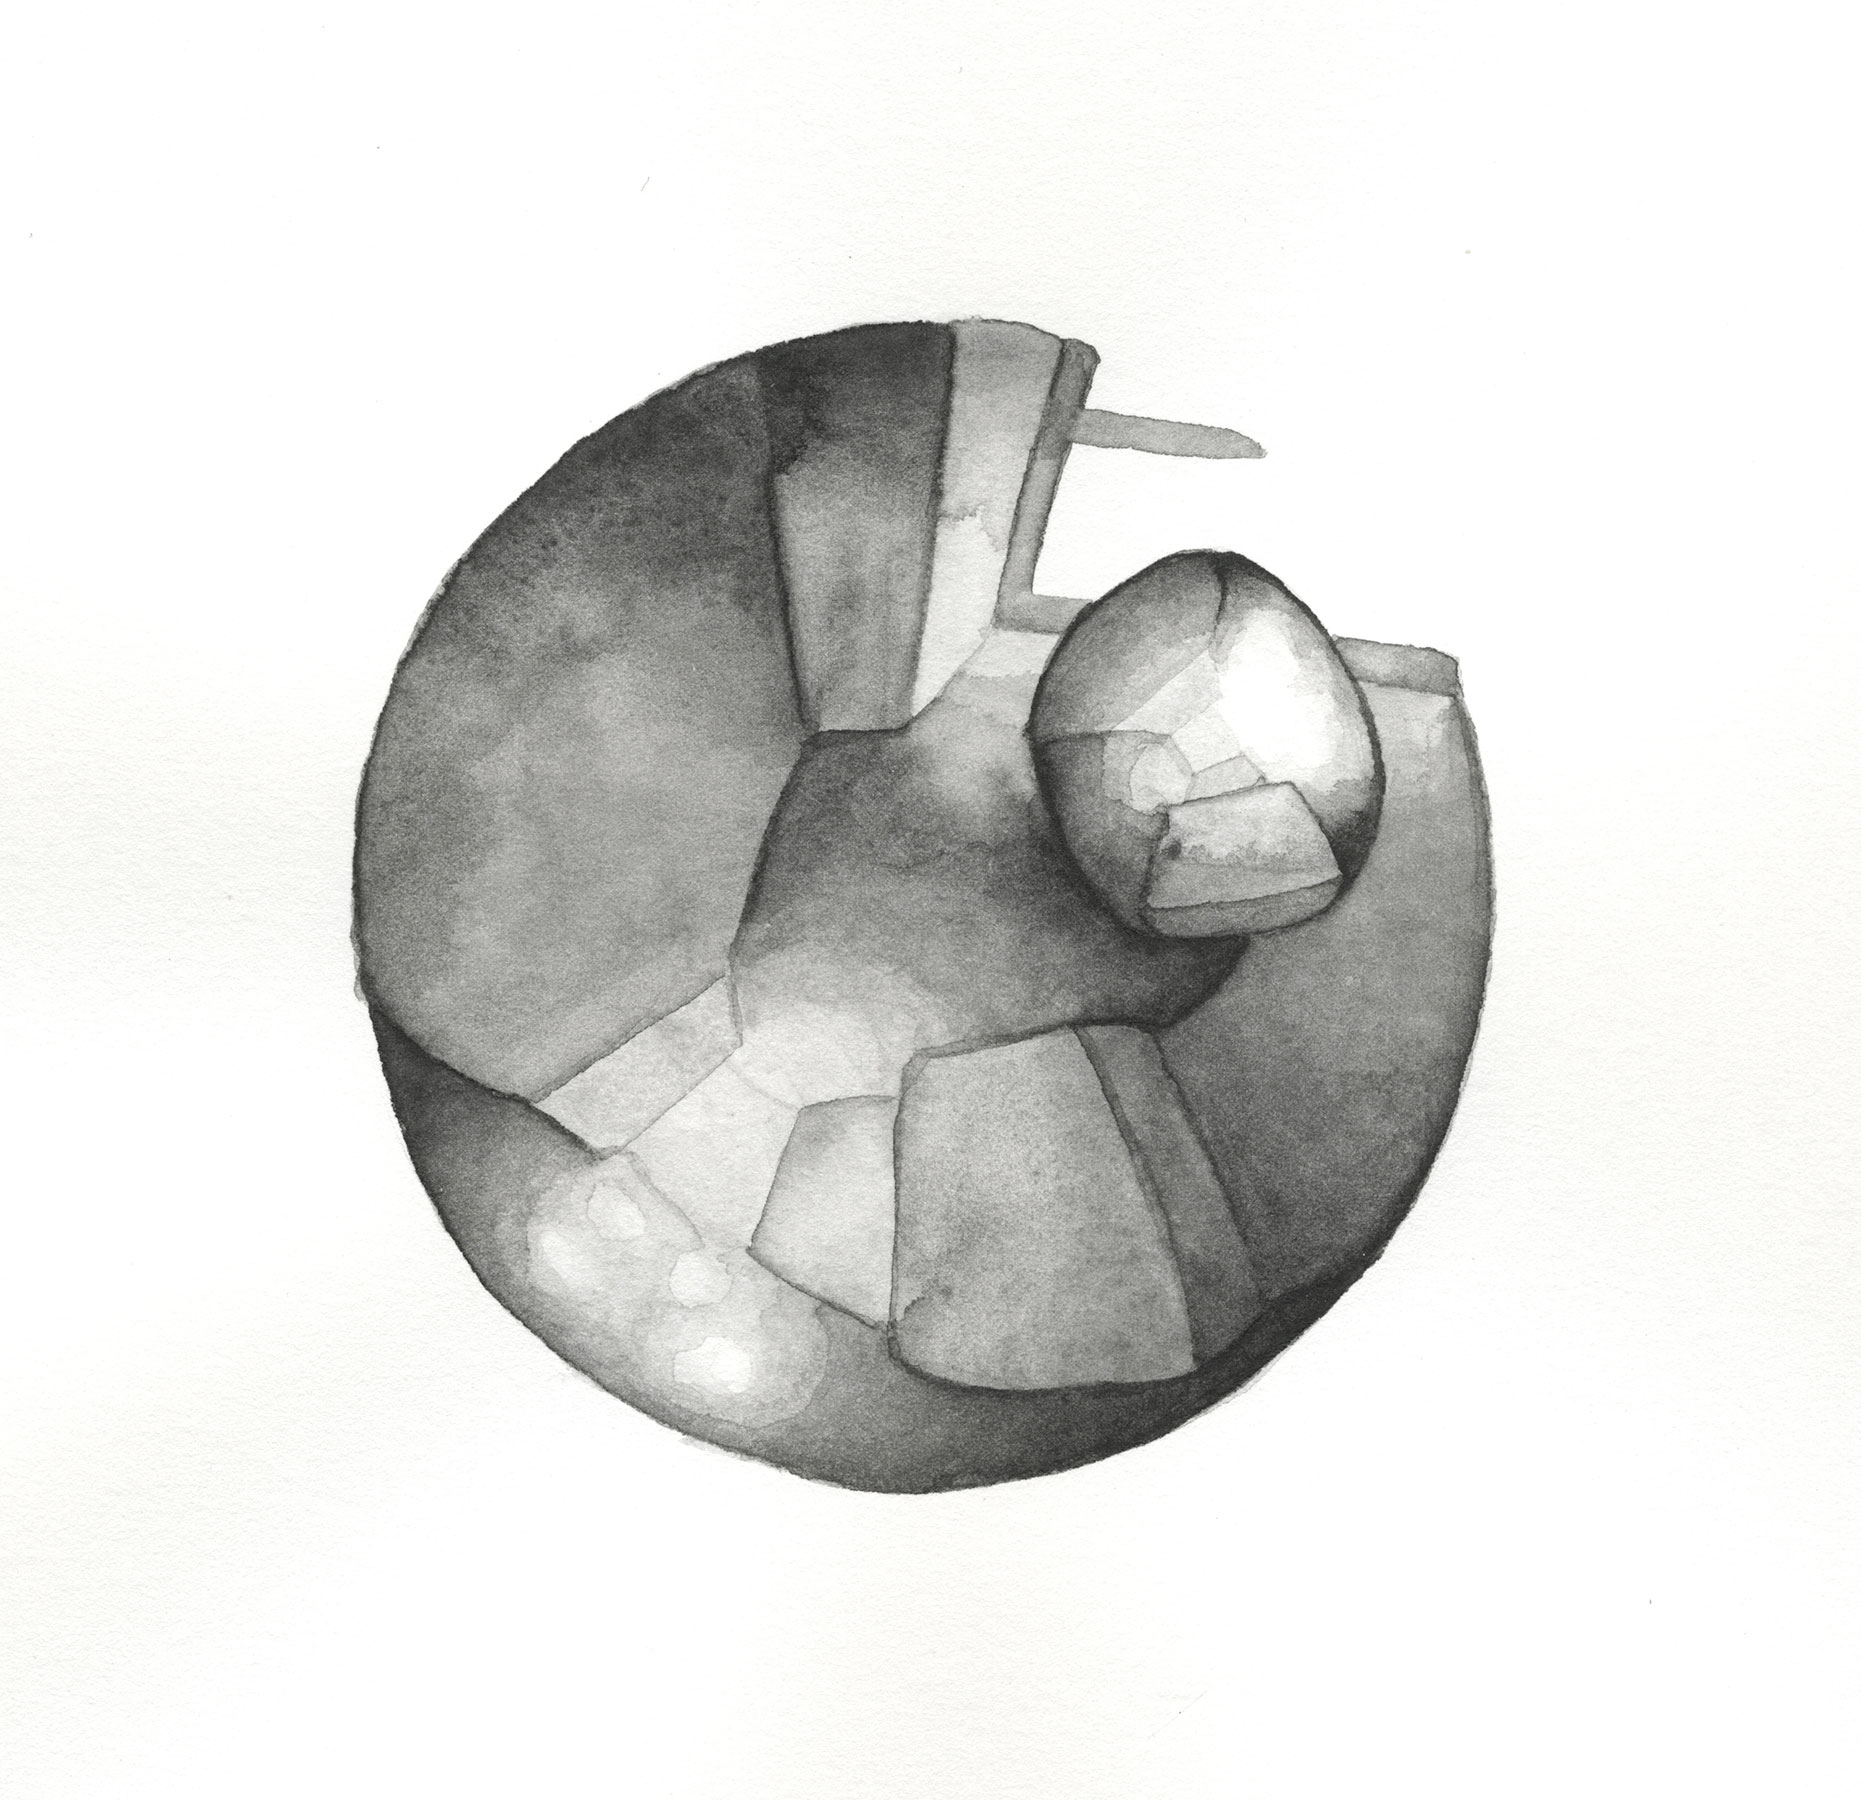 LENSING 1, 2015, 9 X 8 1/2 INCHES, WATERCOLOR ON PAPER